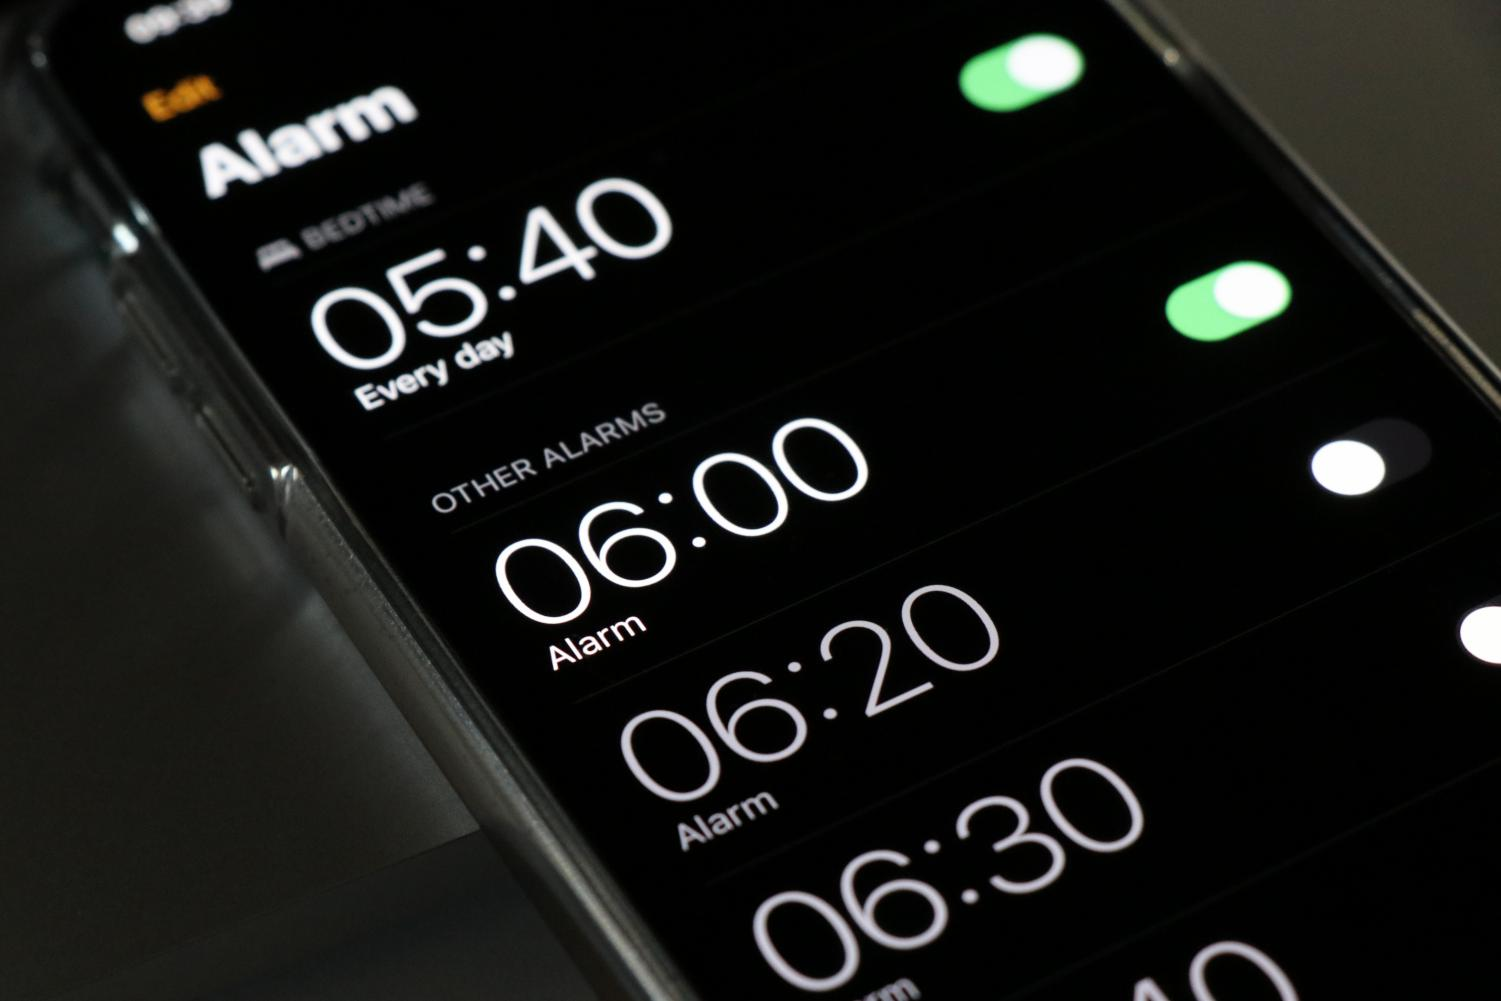 ALARMS, ALARMS, AND MORE ALARMS: People need constant blaring reminders on when to wake up. If sleep were to be maintained properly, there would be no use for such a thing.